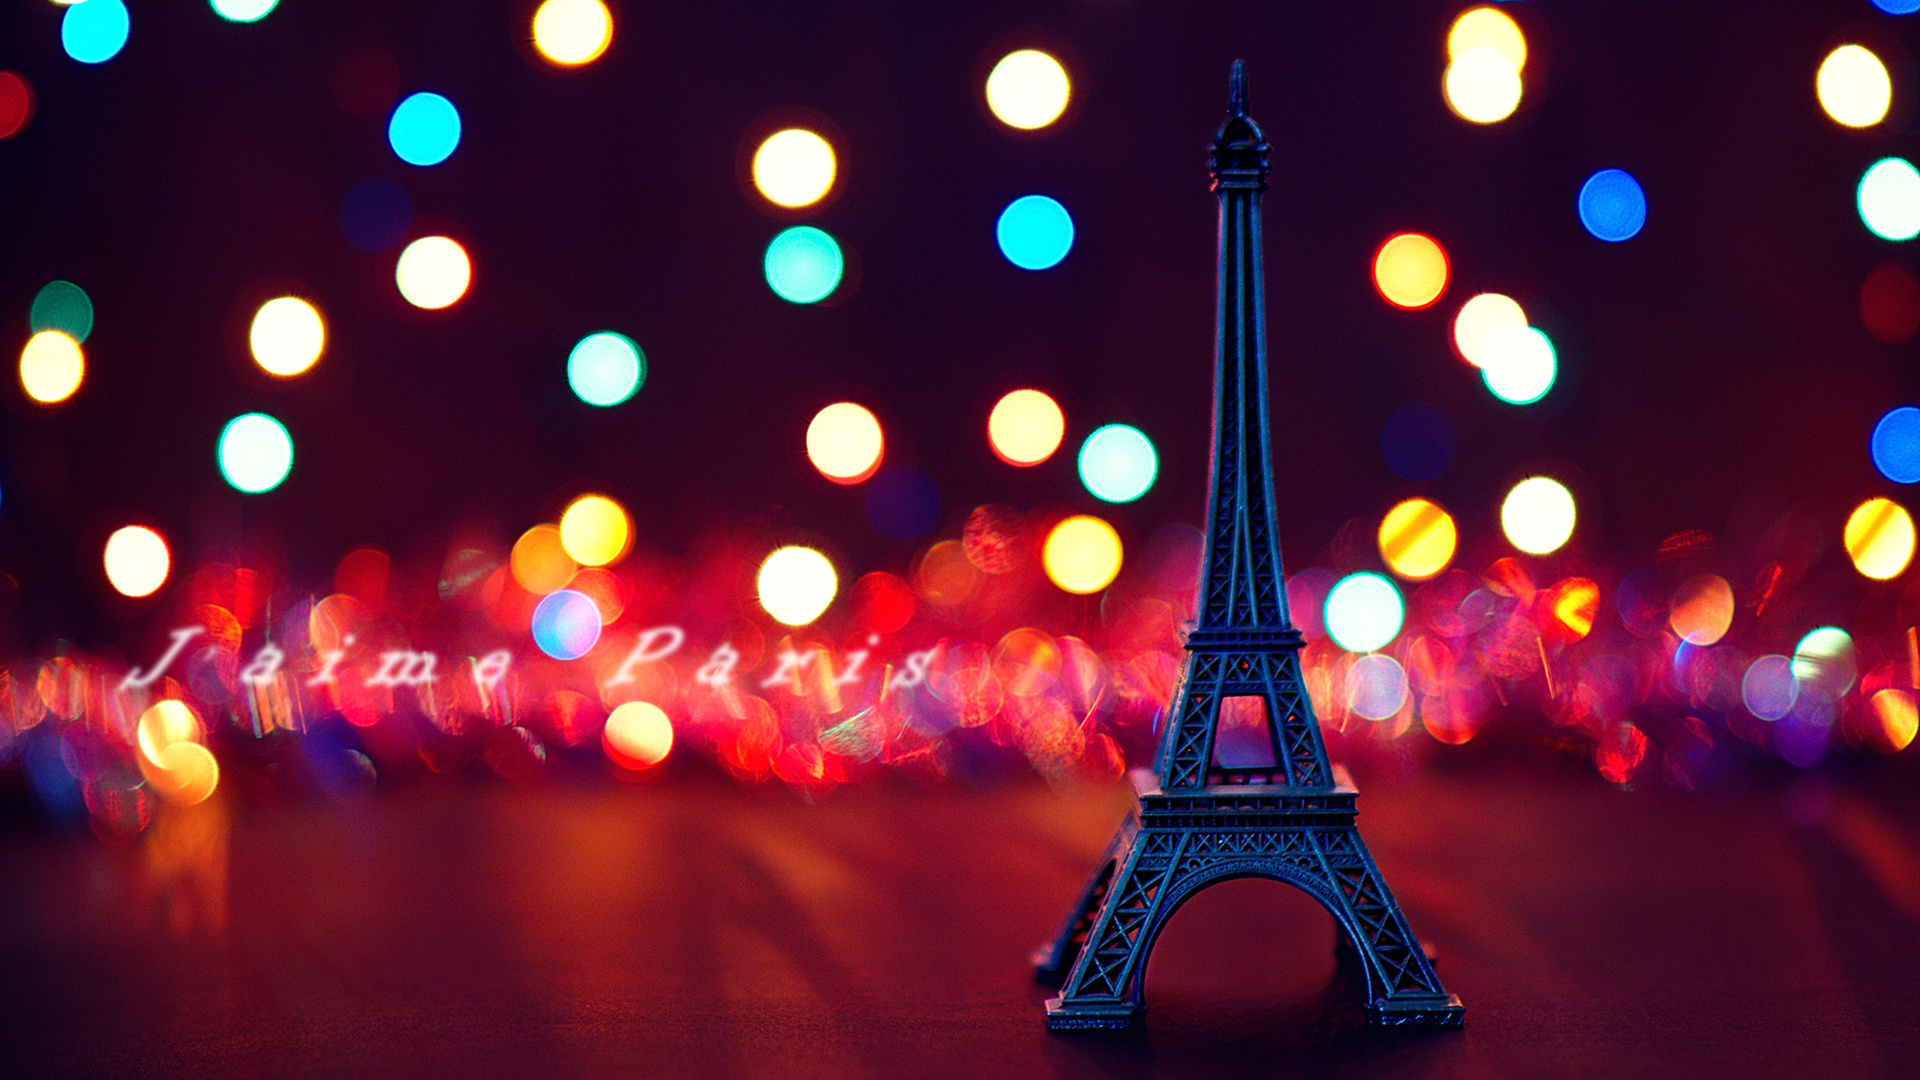 Eiffel Tower Paris bokeh text wallpaper | 1920x1080